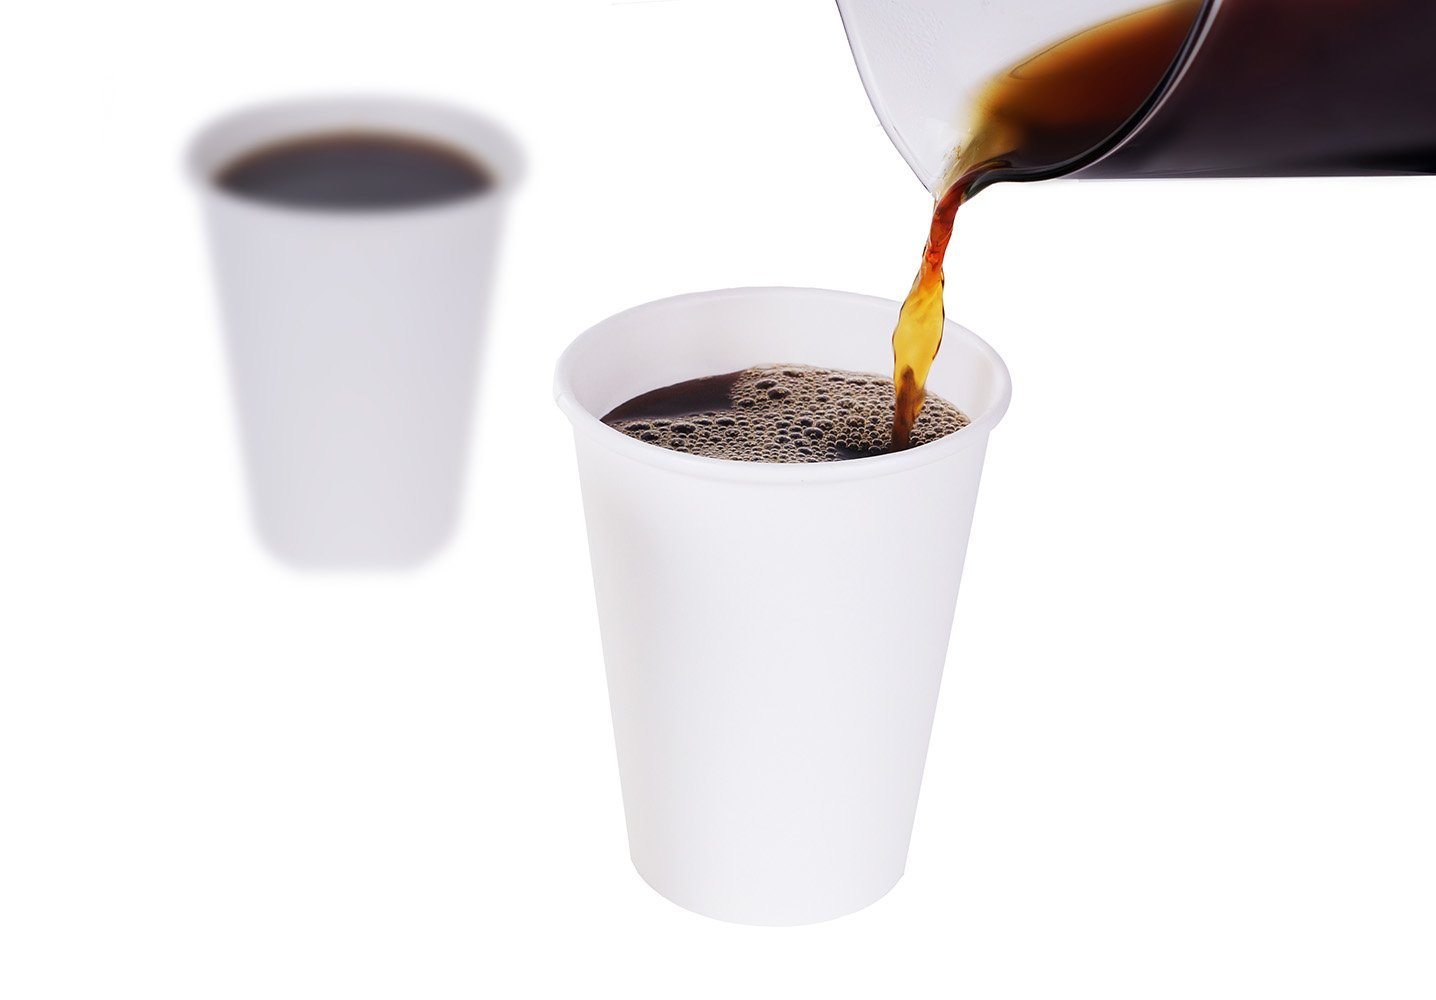 TashiBox 12 oz White Hot Drink Paper Cups - 120 Count - Disposable Paper Coffee Cups by TashiBox (Image #2)